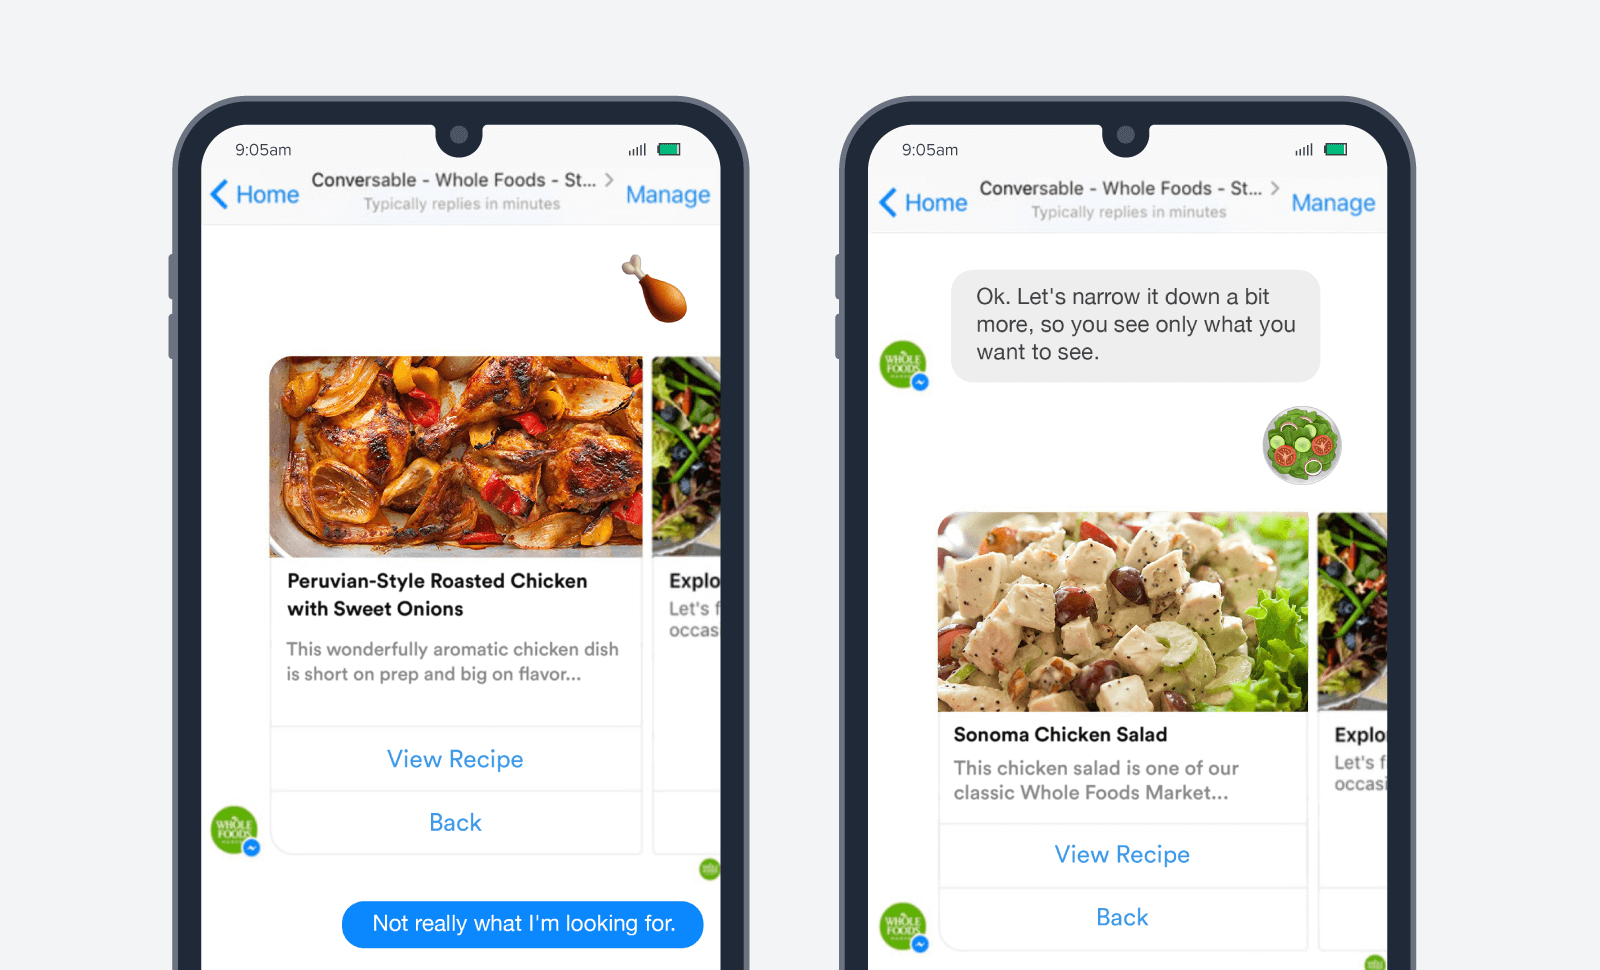 Whole foods chatbots meet customers where they are without the need for trigger campaigns or app downloads